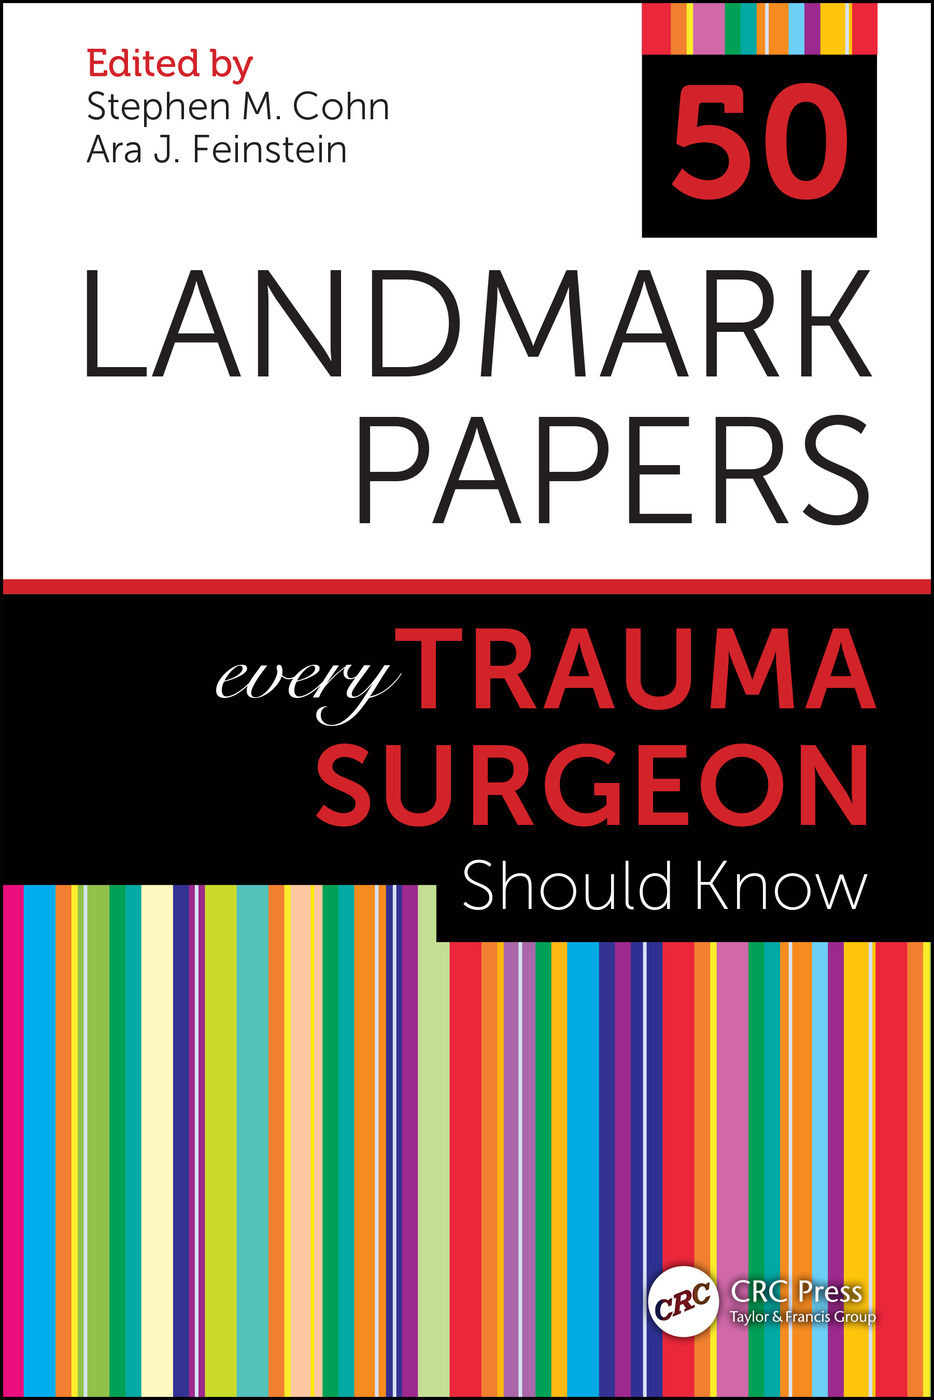 50 Landmark Papers Every Trauma Surgeon Should Know 1st Edition St